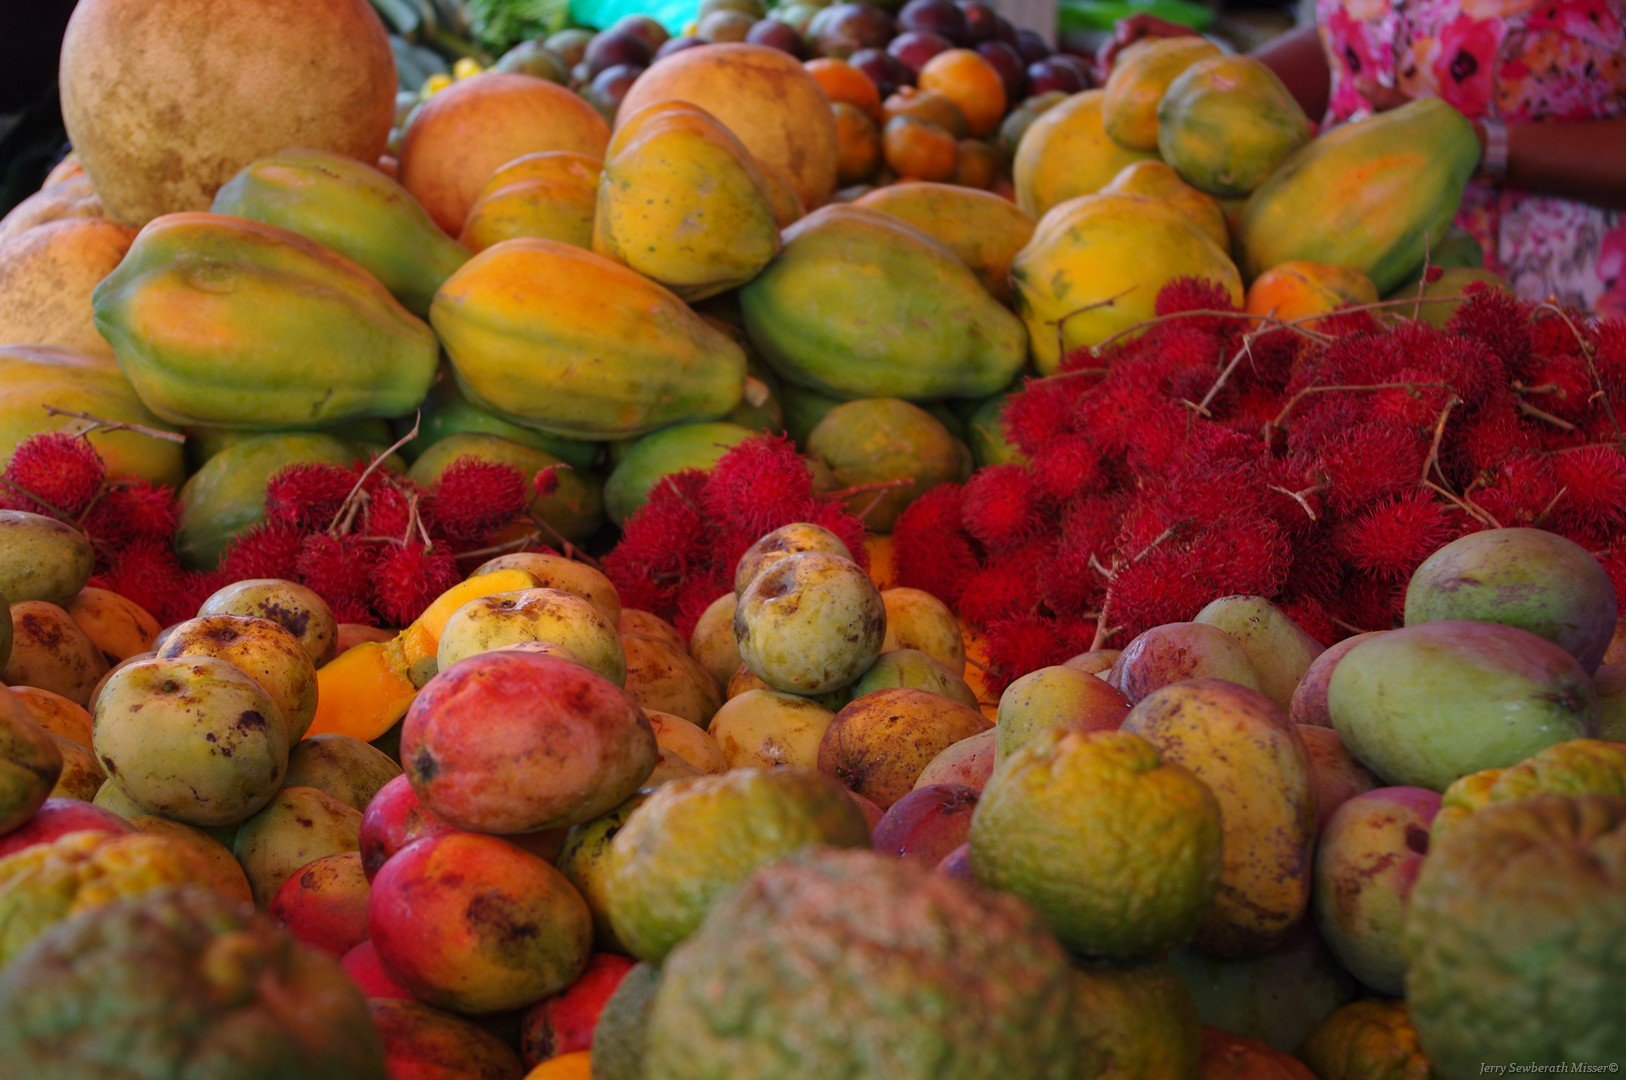 Fruits of the Guianas